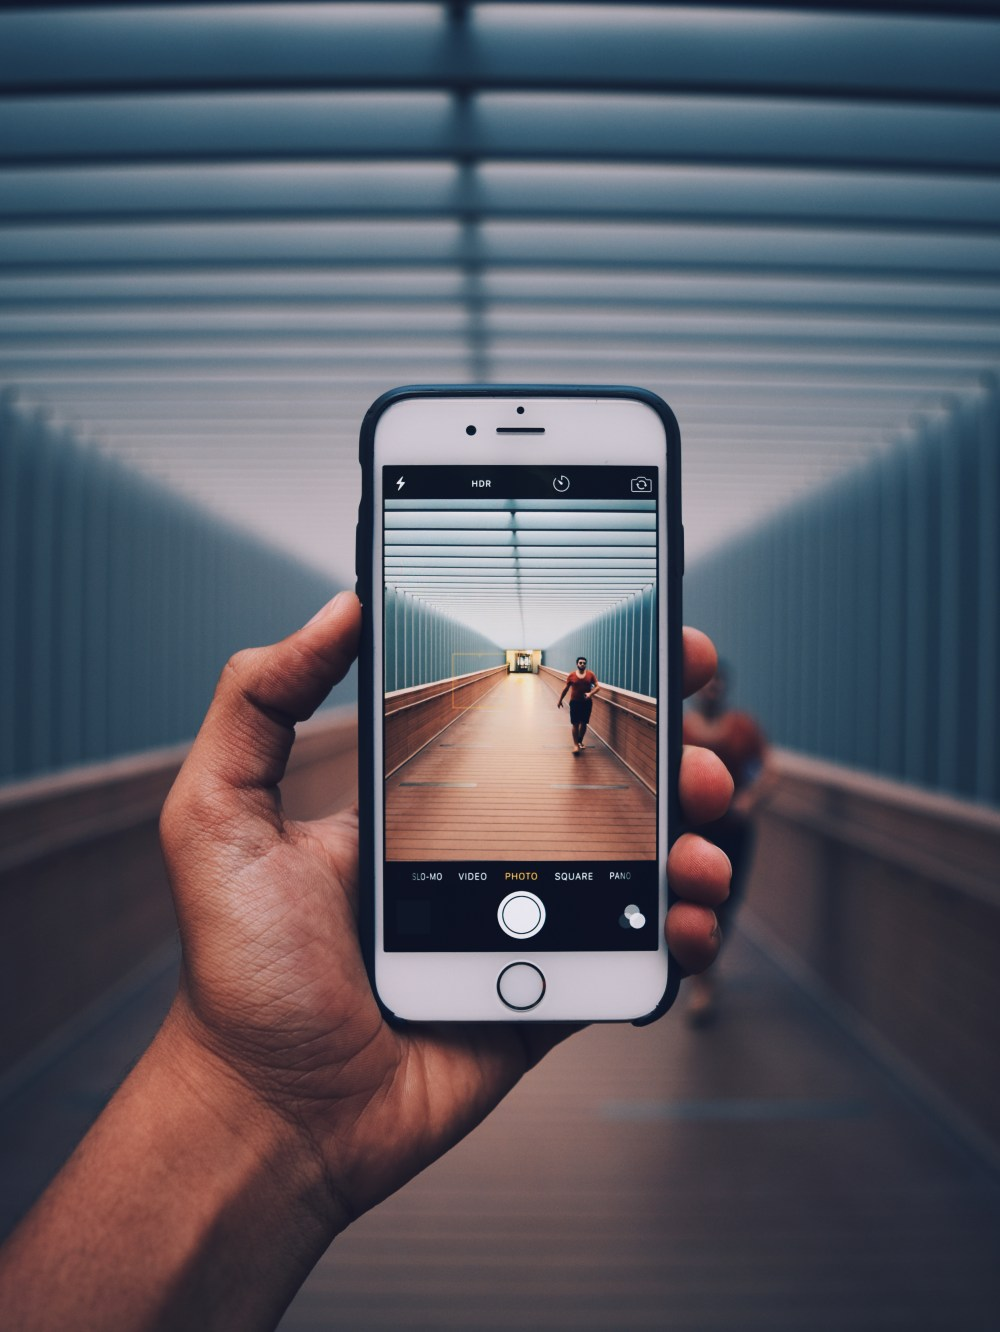 Cell Phone Images Free : phone, images, Phone, Pictures, Download, Images, Unsplash